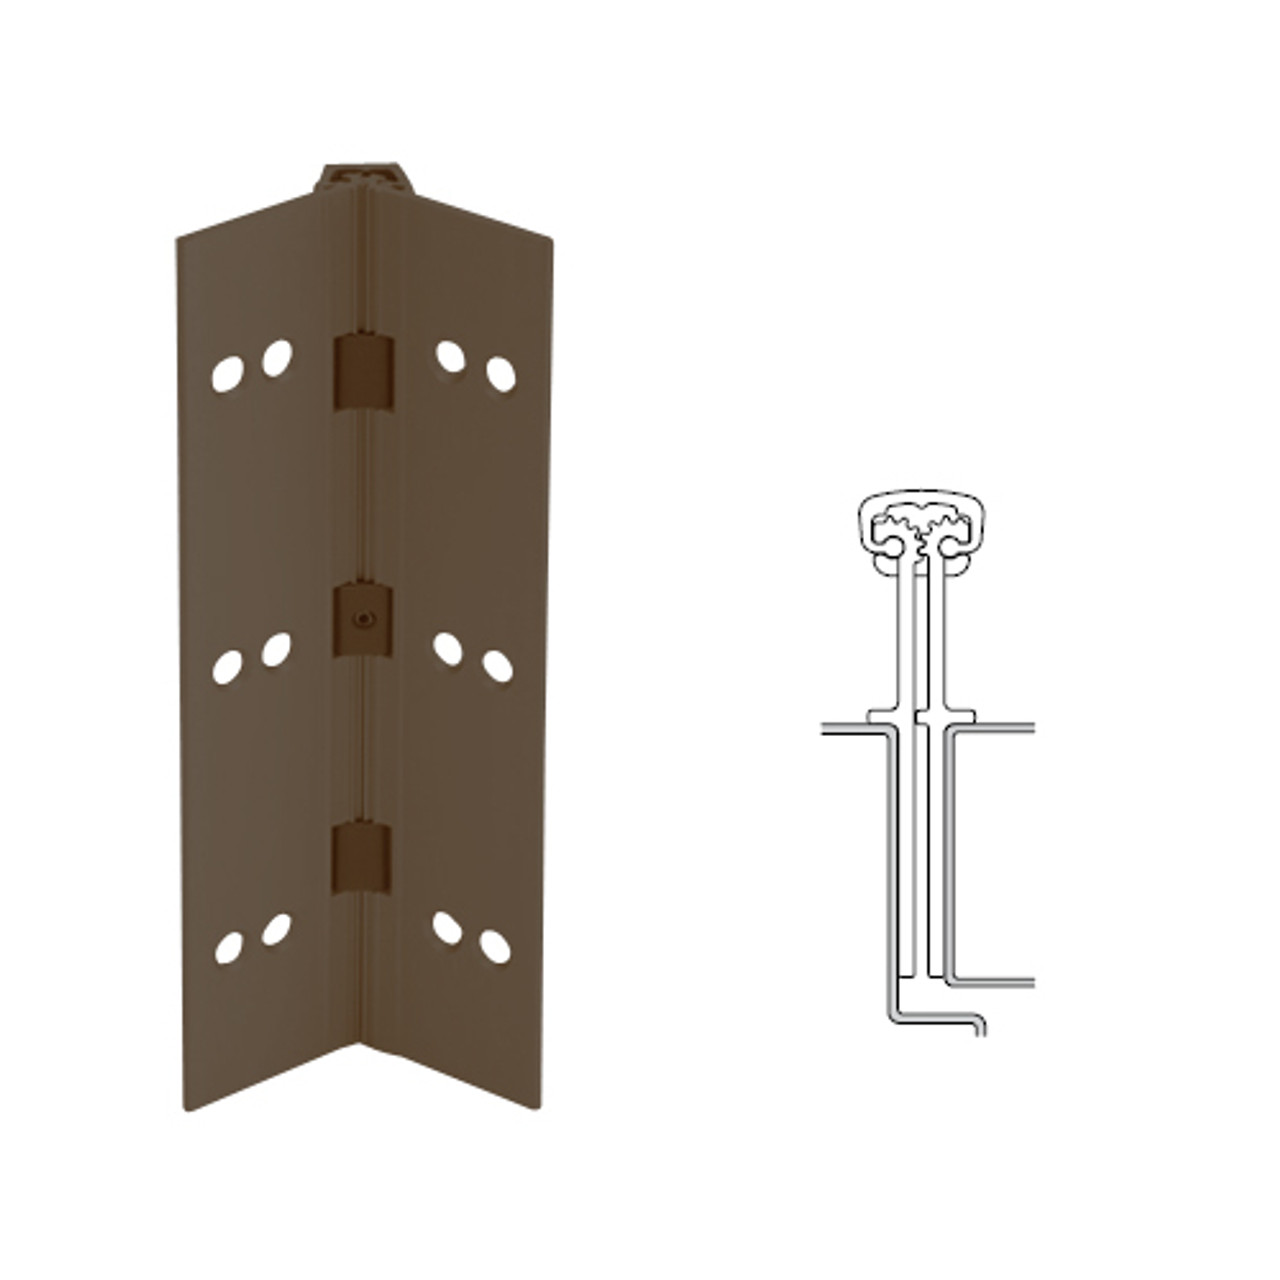 040XY-313AN-95-TFWD IVES Full Mortise Continuous Geared Hinges with Thread Forming Screws in Dark Bronze Anodized